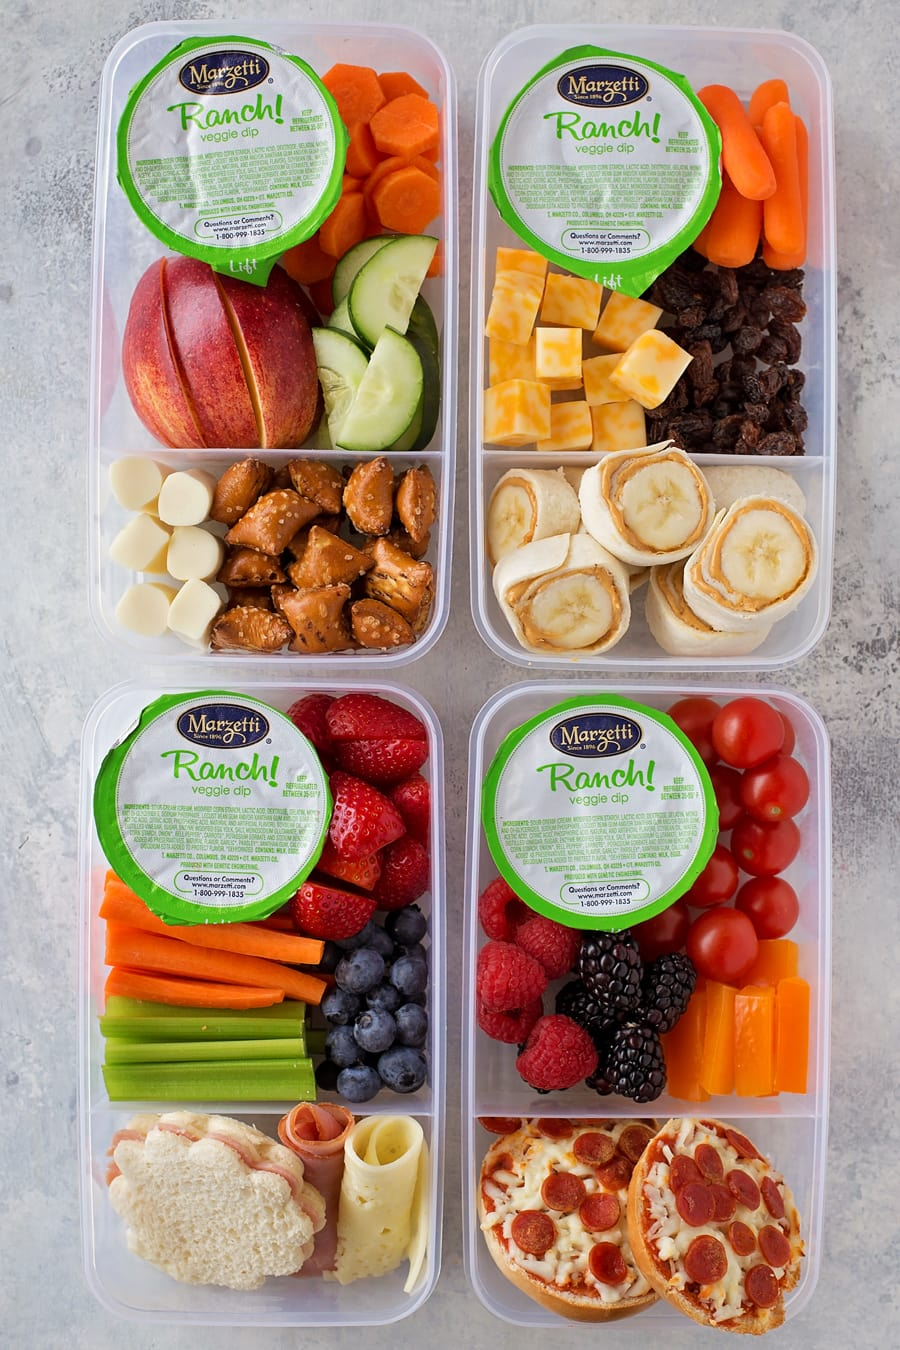 You must all be starved for frugal lunch ideas, 'cause the email from my Lunchables food hack was a lot for me to digest. Who knew that shopping for crackers and cheese and then tallying the costs could give so many readers food for thought.